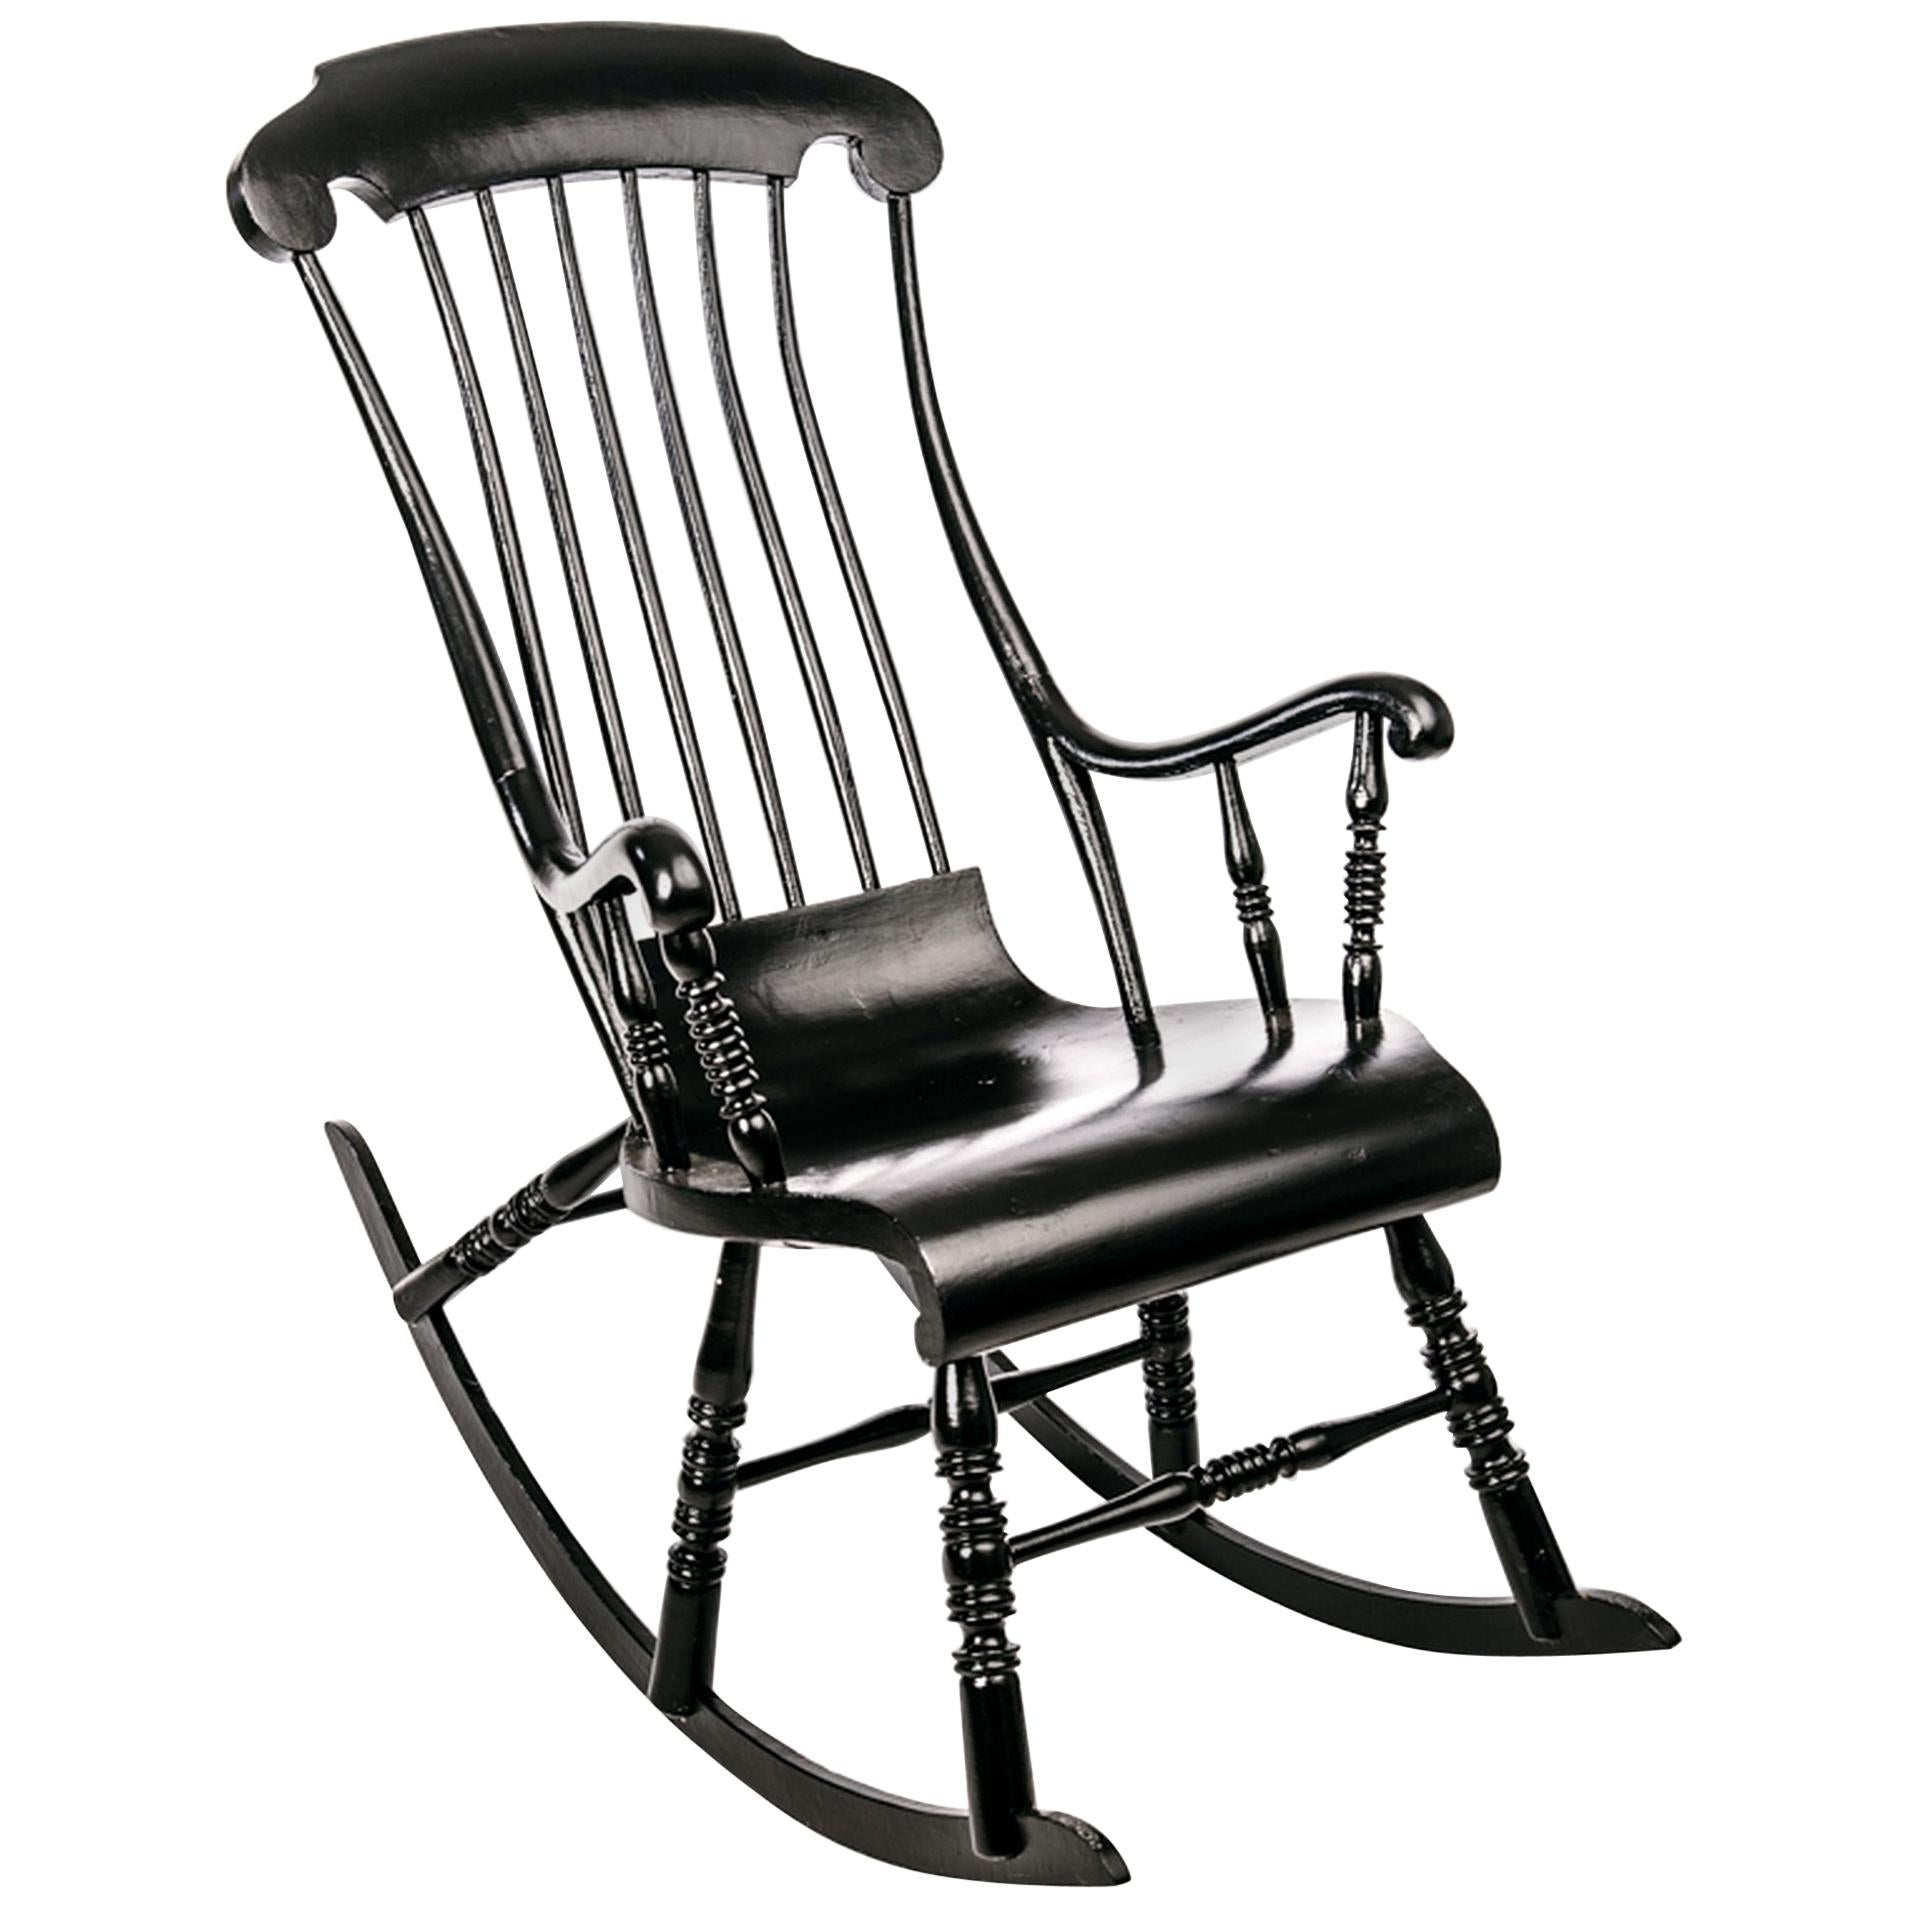 Ordinaire Antique Swedish Rocking Chair In Black Painted Pine For Sale